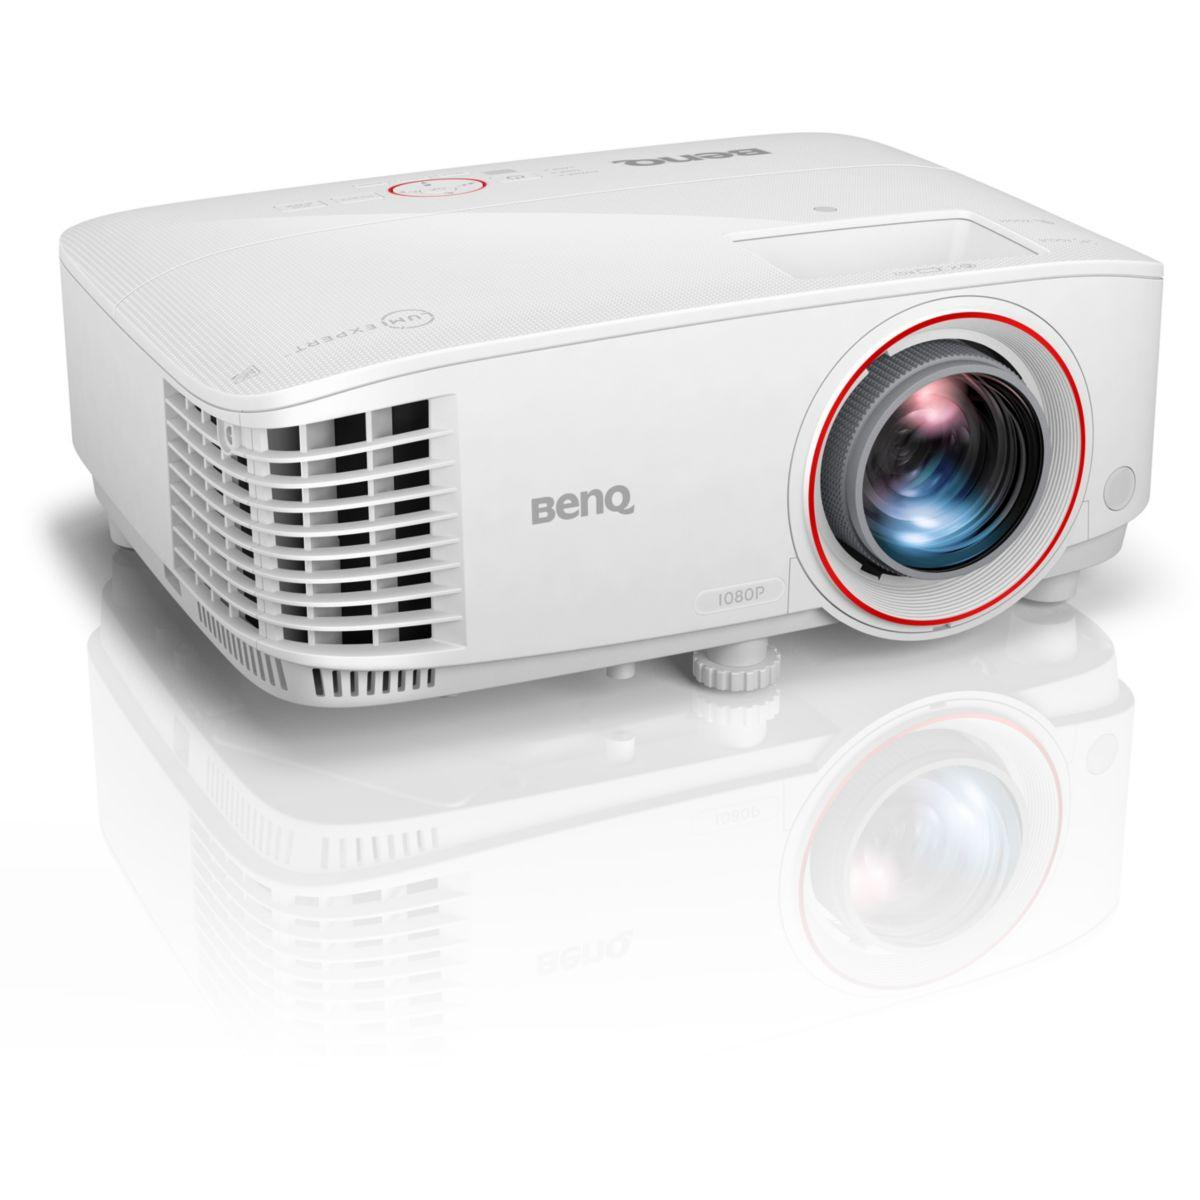 Vid�oprojecteur home cin�ma benq th671st (photo)